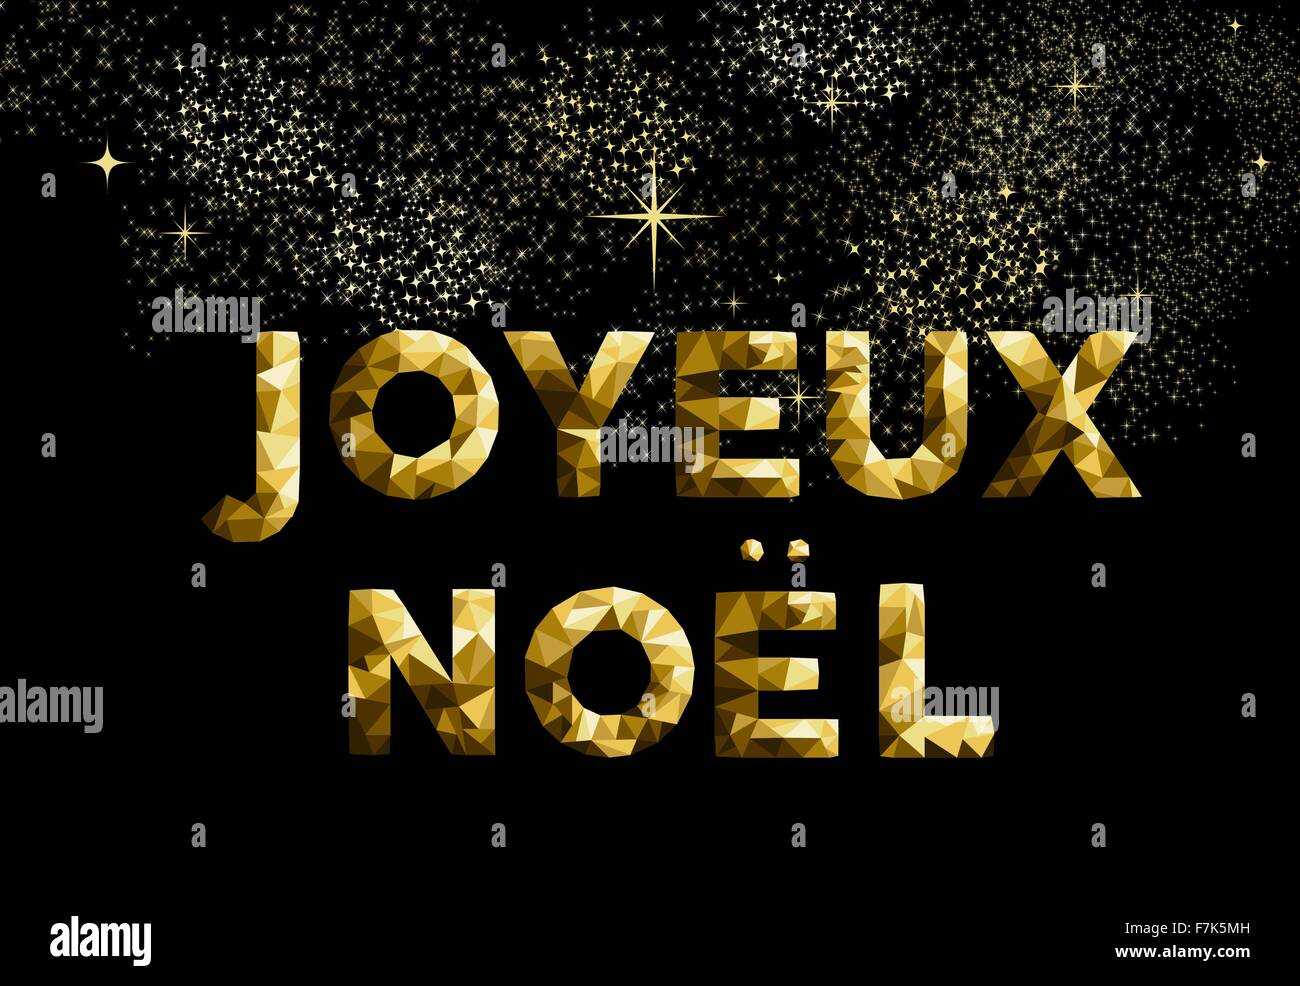 Merry christmas greeting card in french language joyeux noel gold merry christmas greeting card in french language joyeux noel gold low poly style ideal for holiday poster web or worldwide m4hsunfo